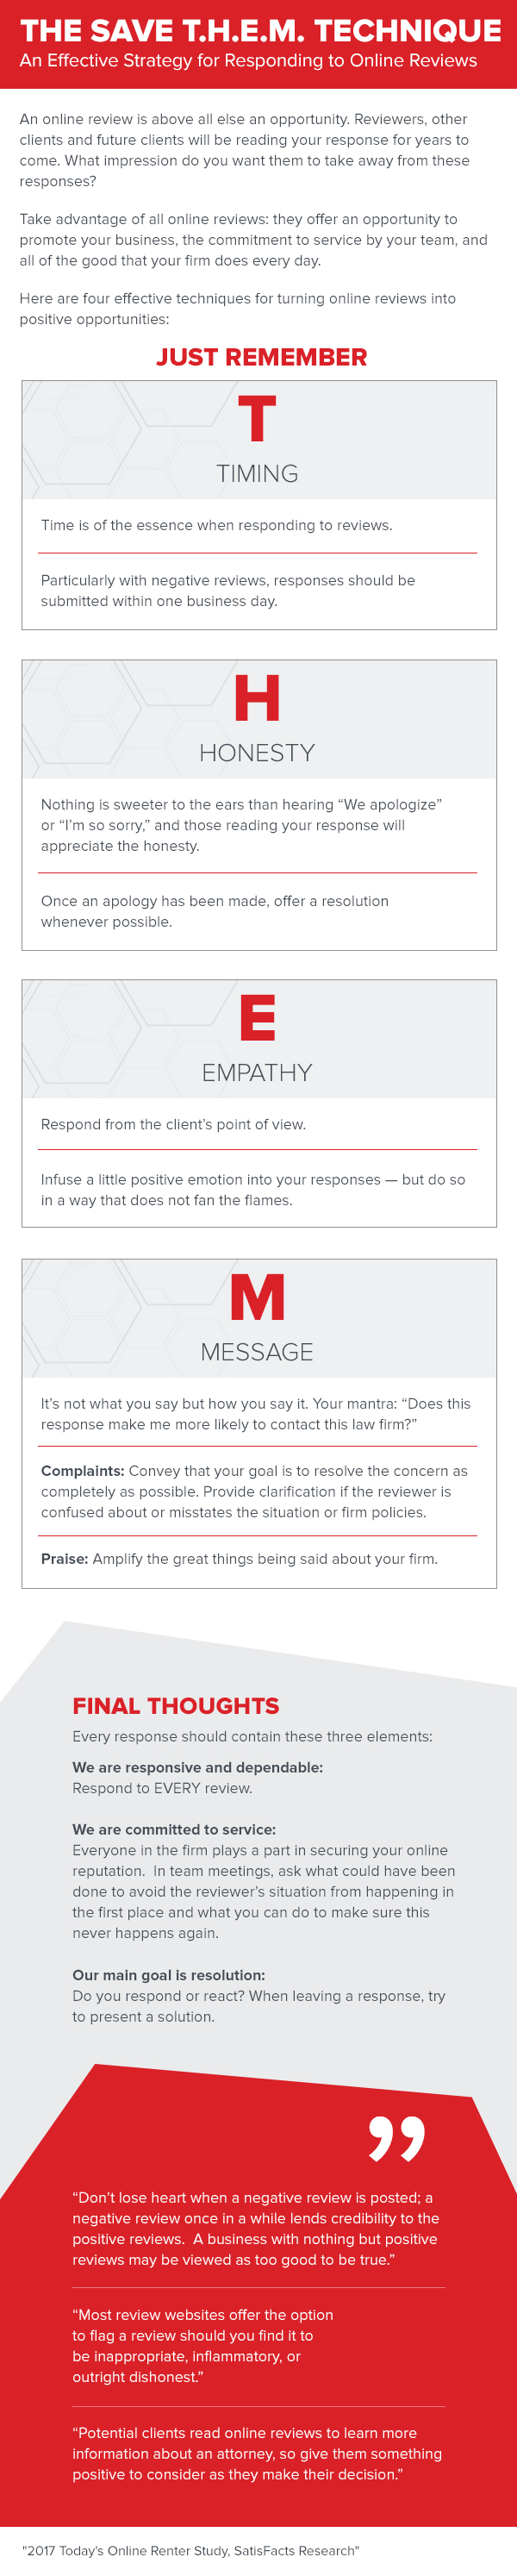 T.H.E.M. TECHNIQUE – An Effective Strategy for Responding to Online Reviews